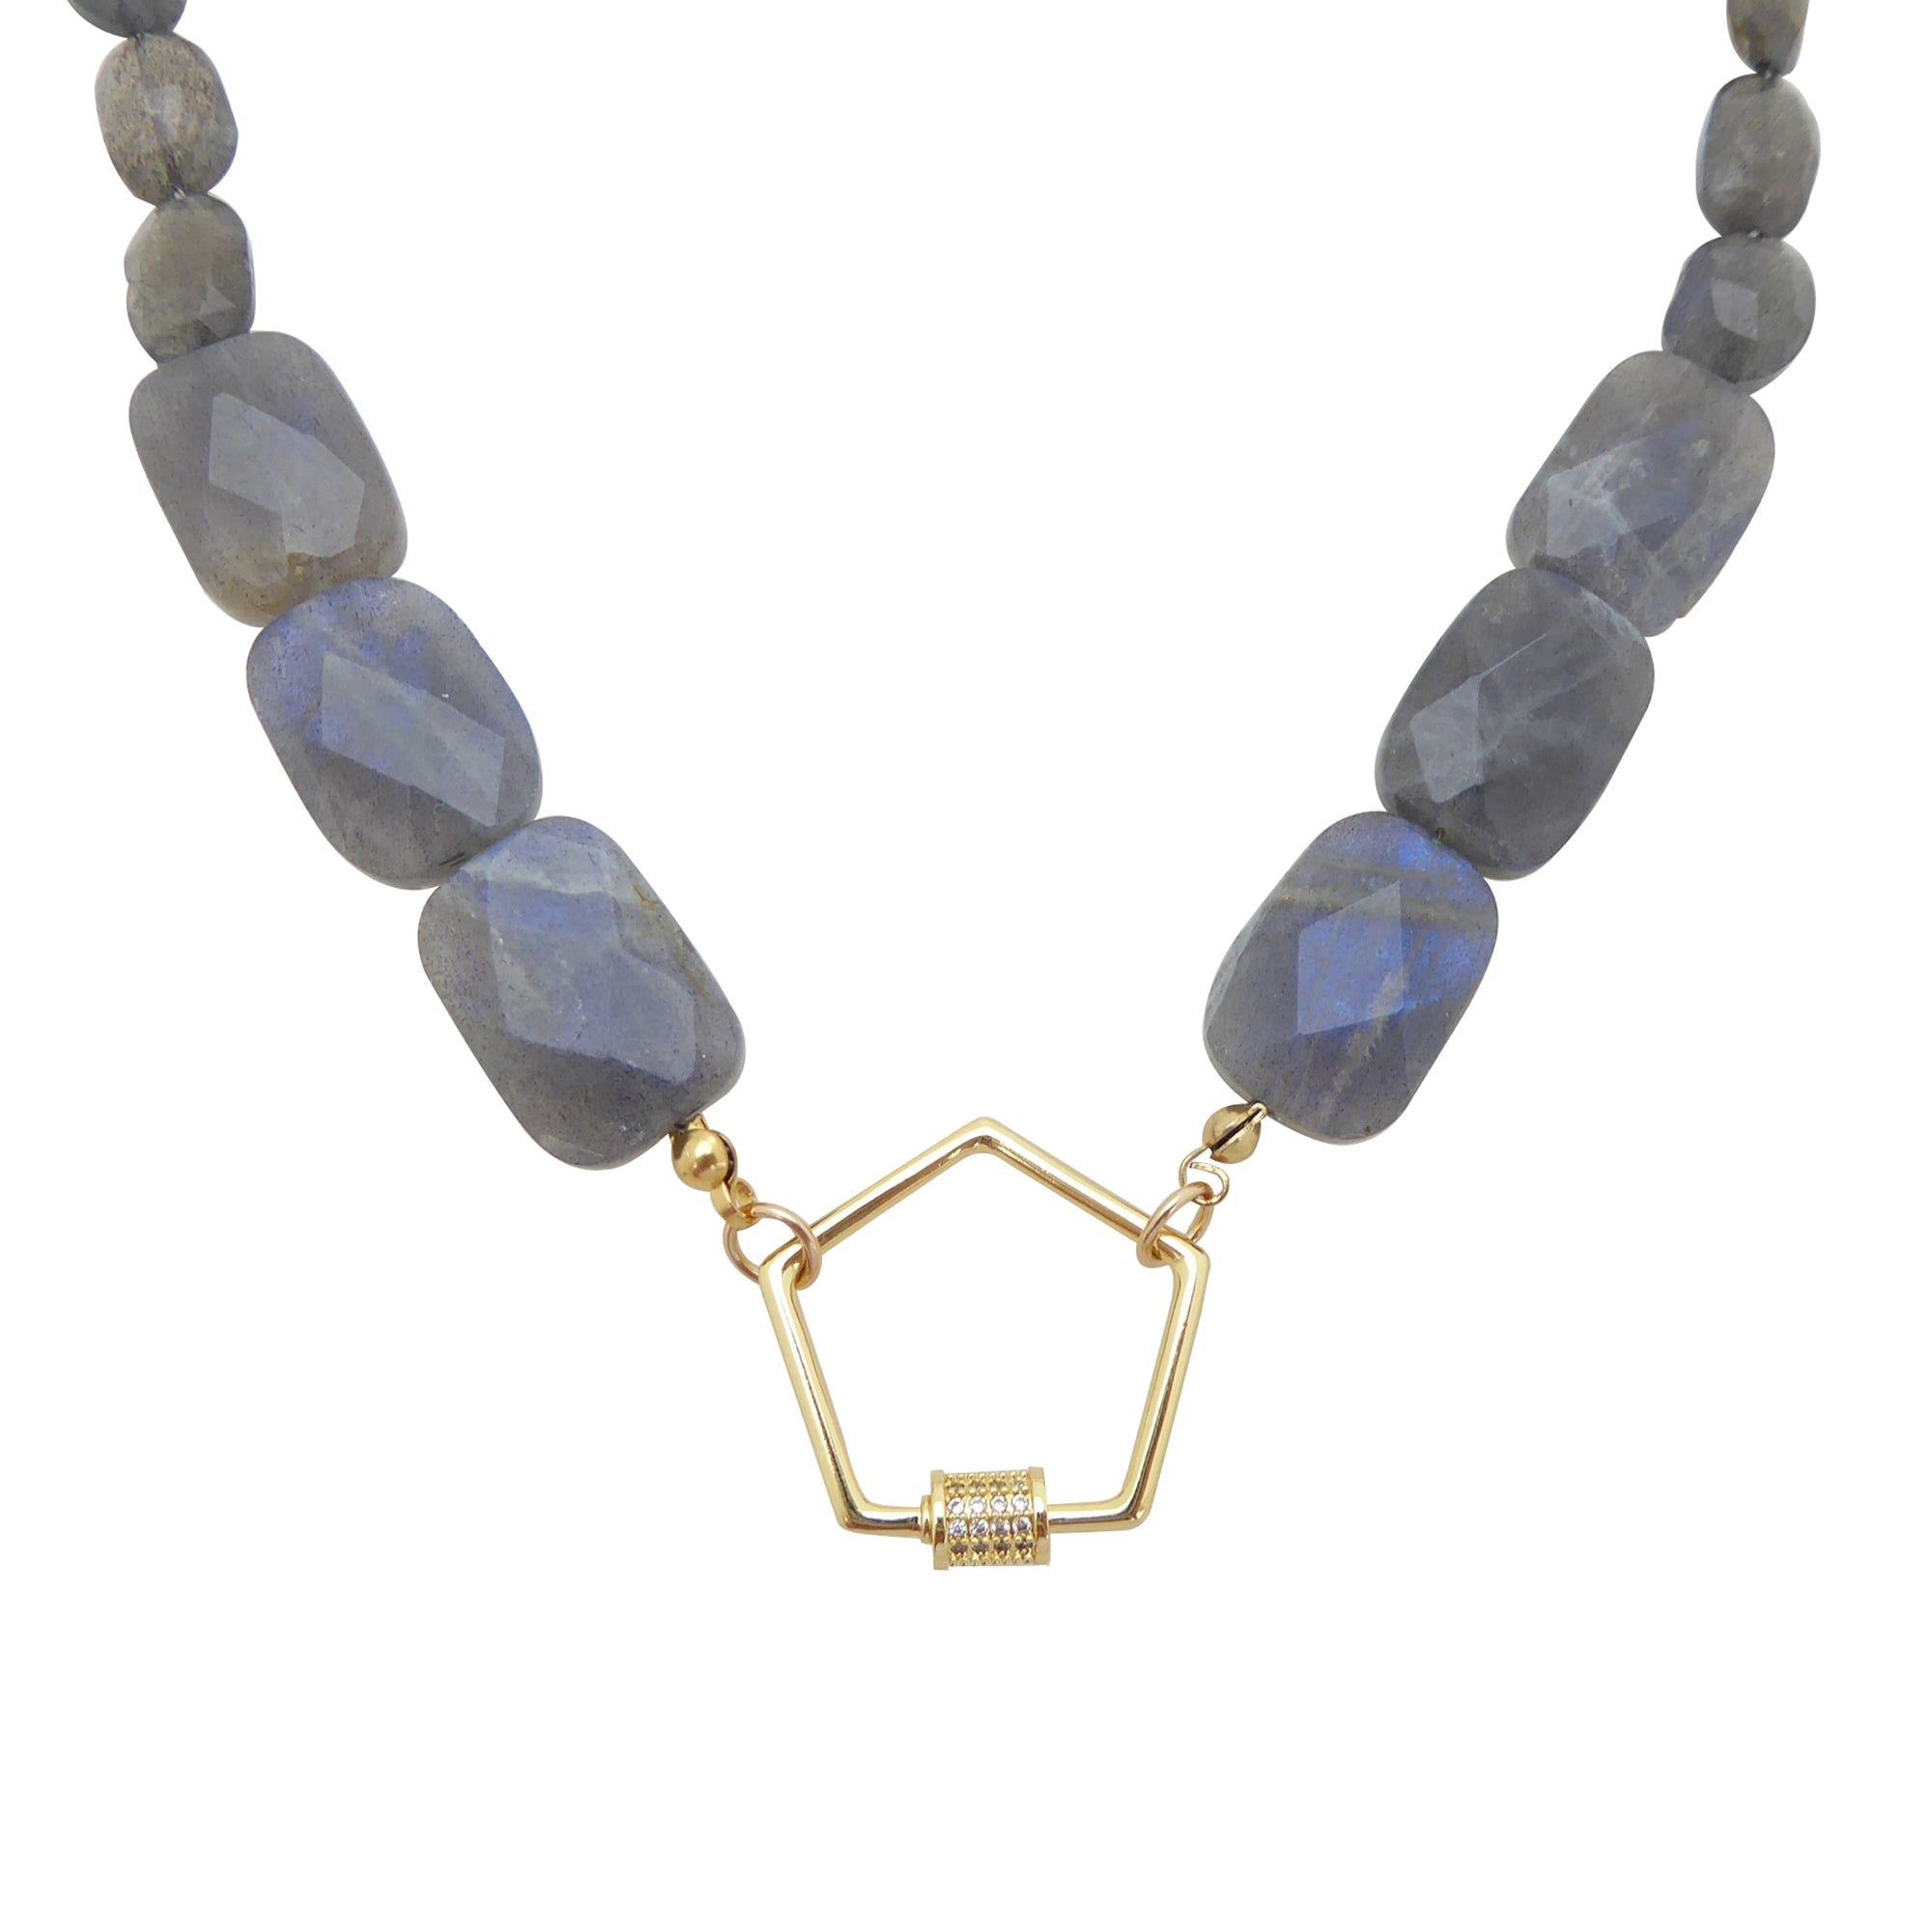 Labradorite pentagon necklace